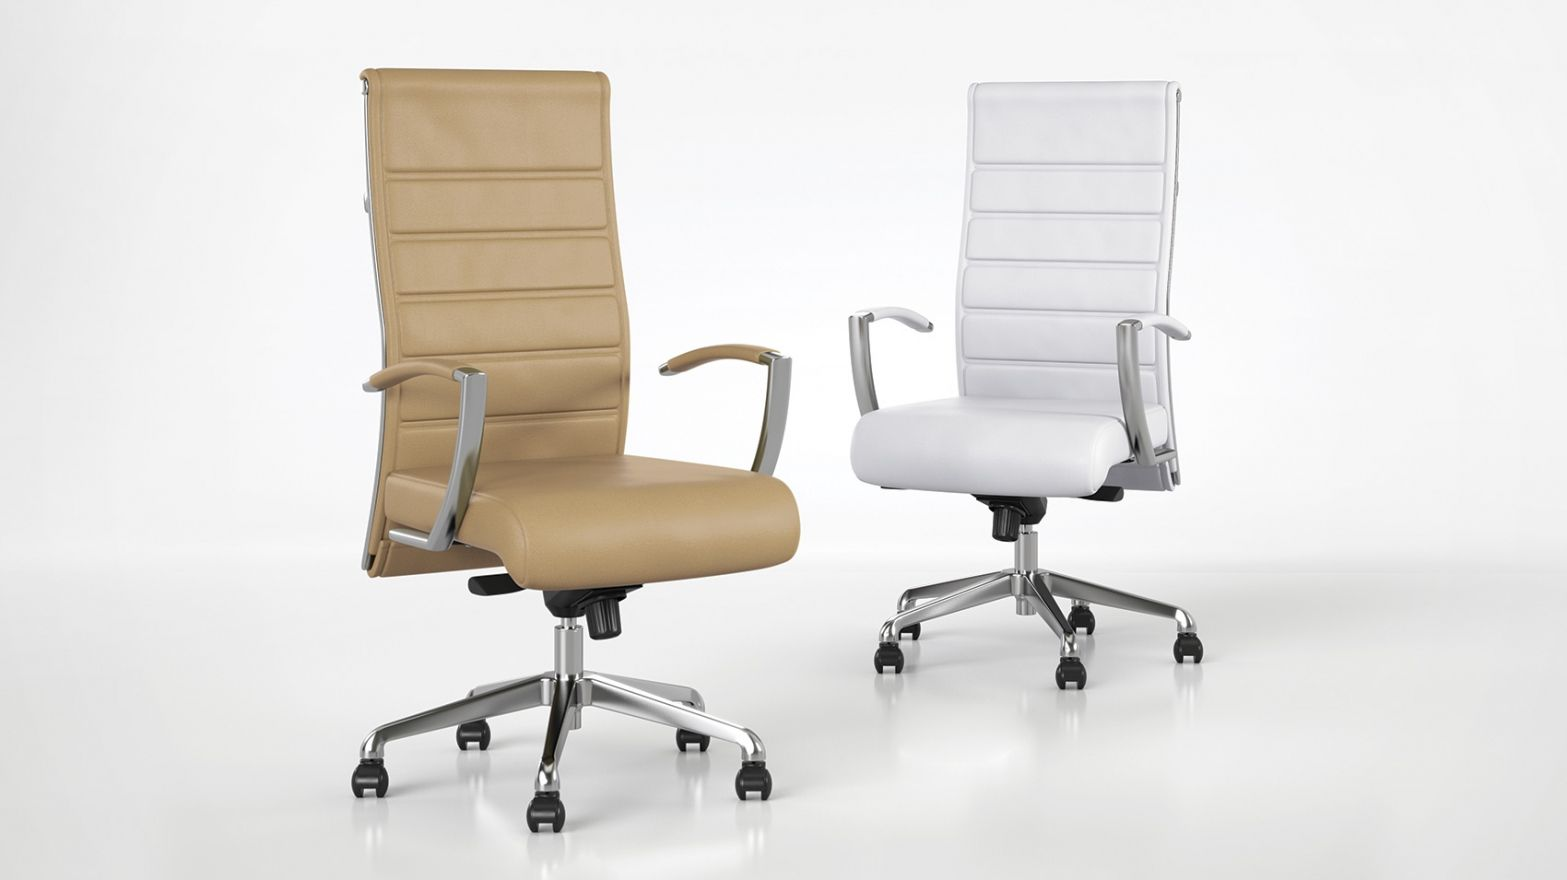 20 Sleek Office Chairs Home Desk Furniture Check More At Http